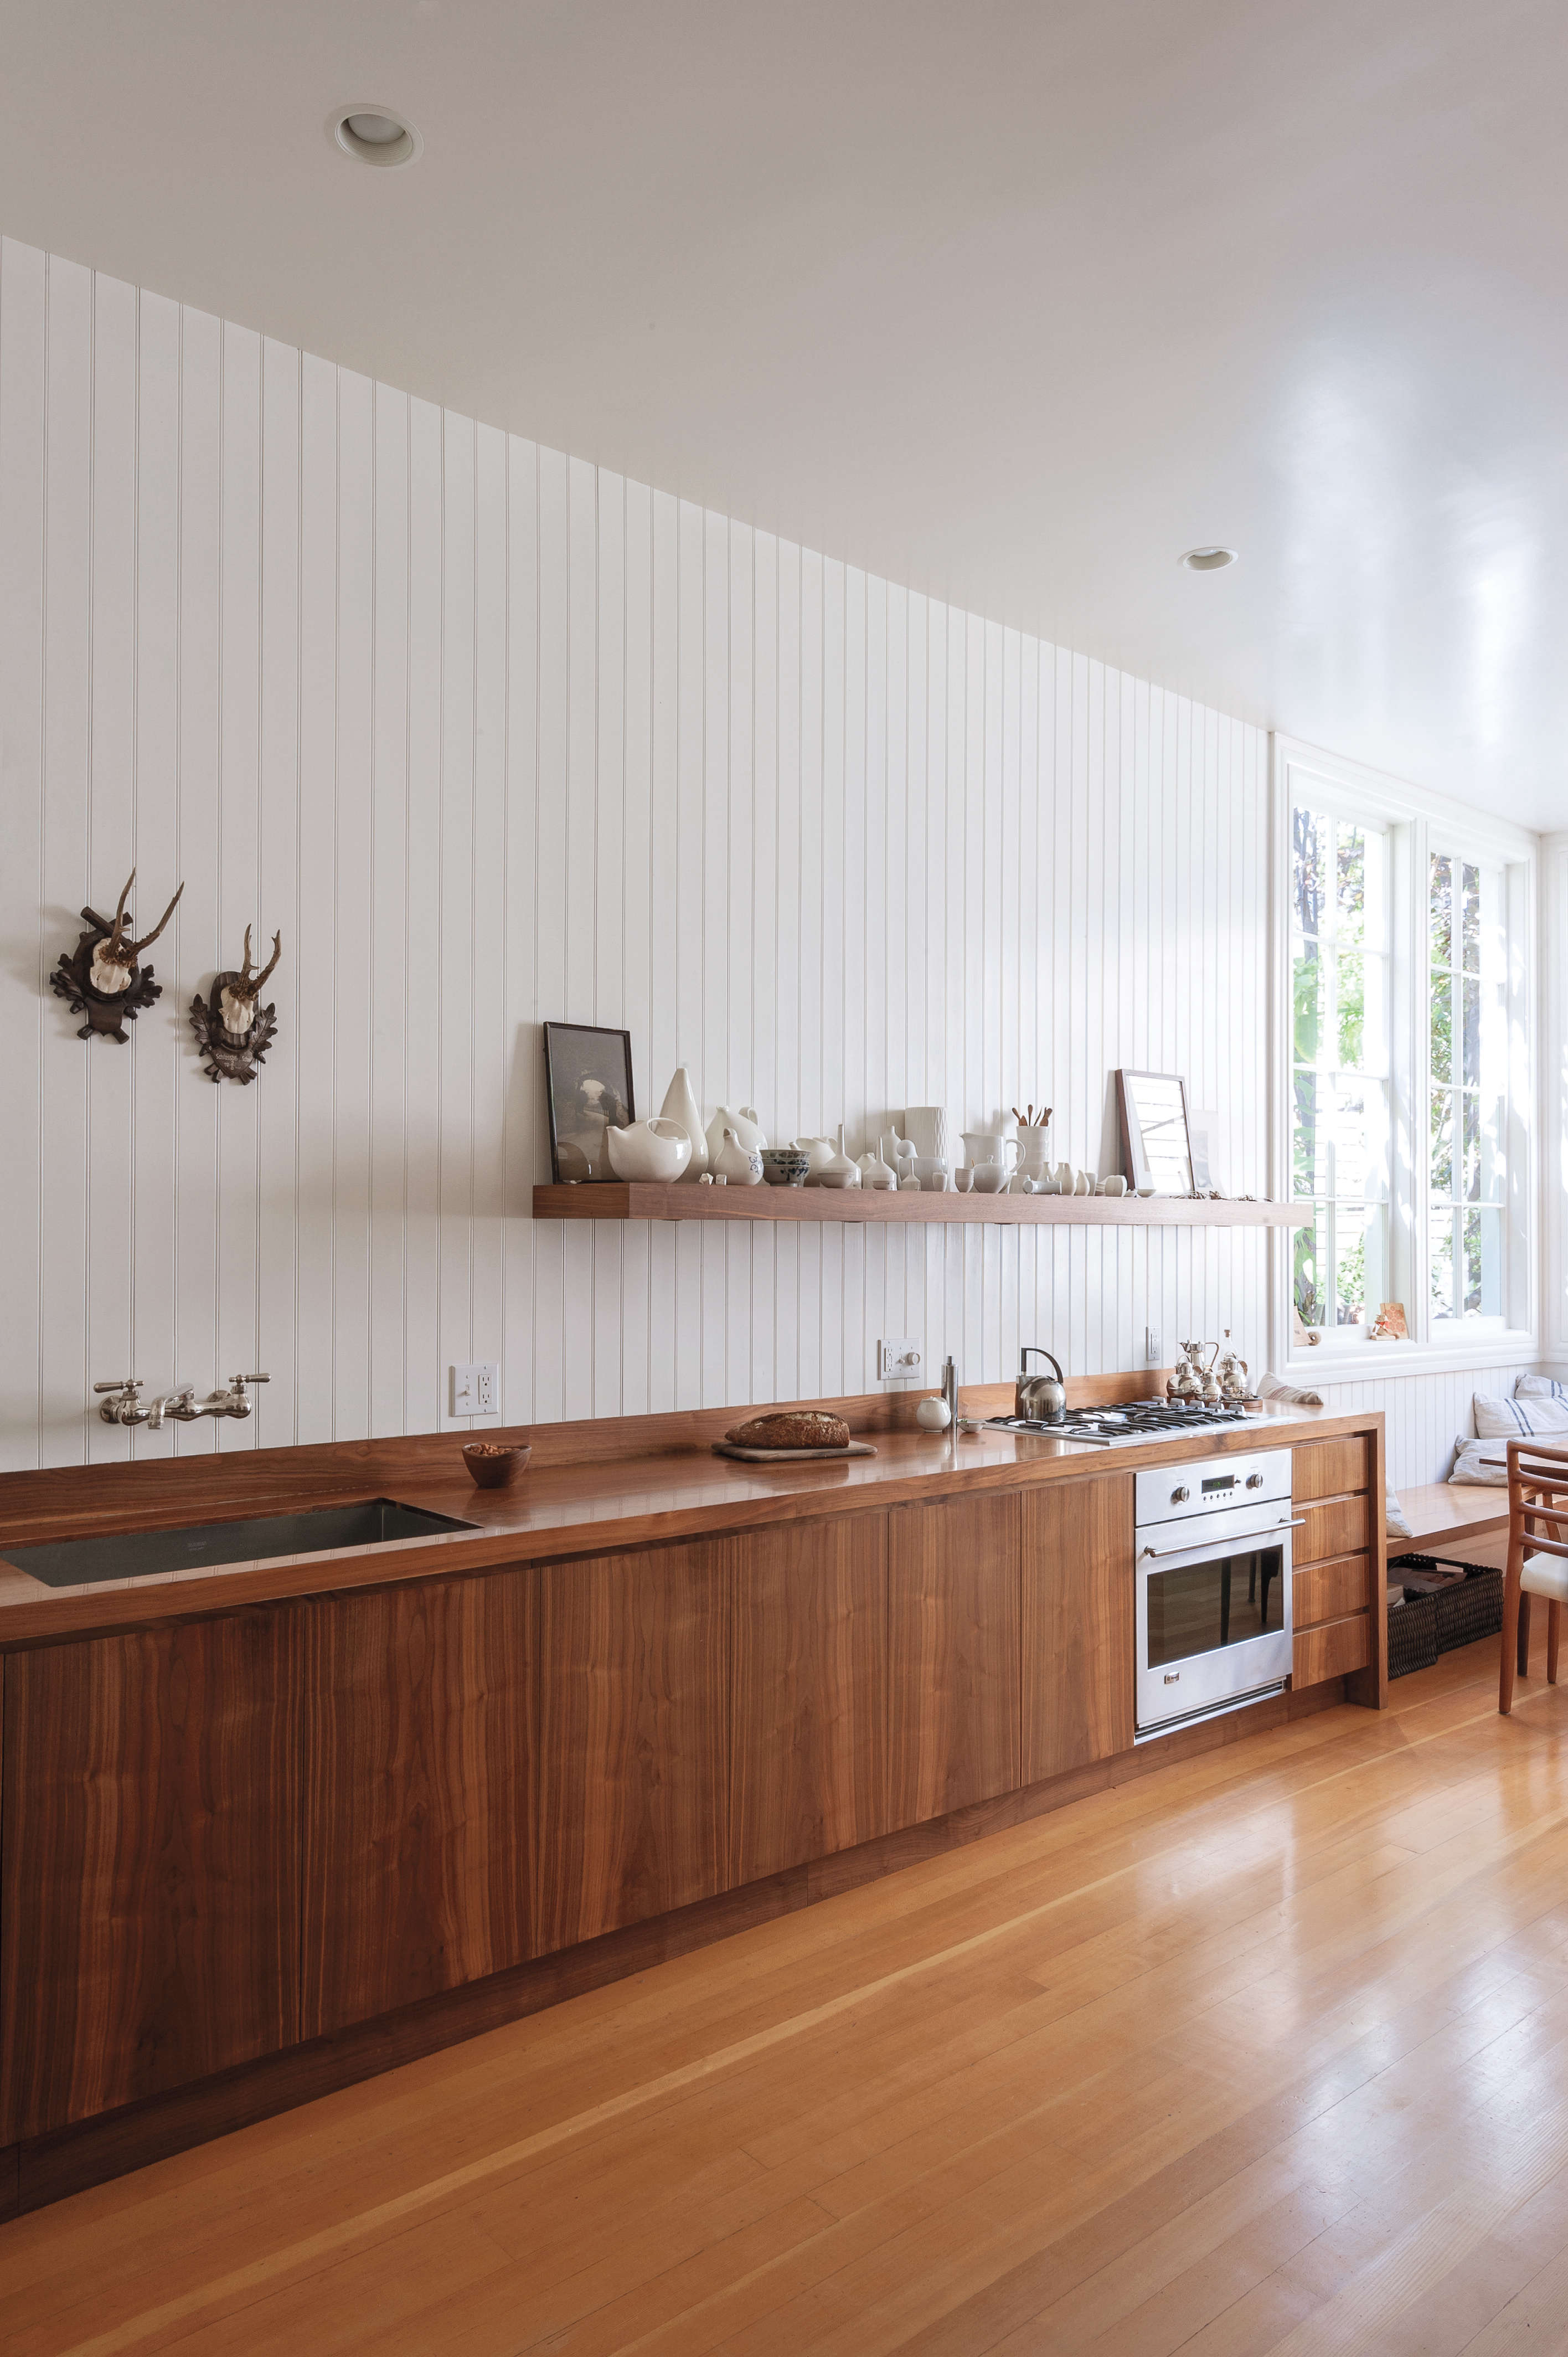 Dagmar Daley Kitchen For Remodelista Book